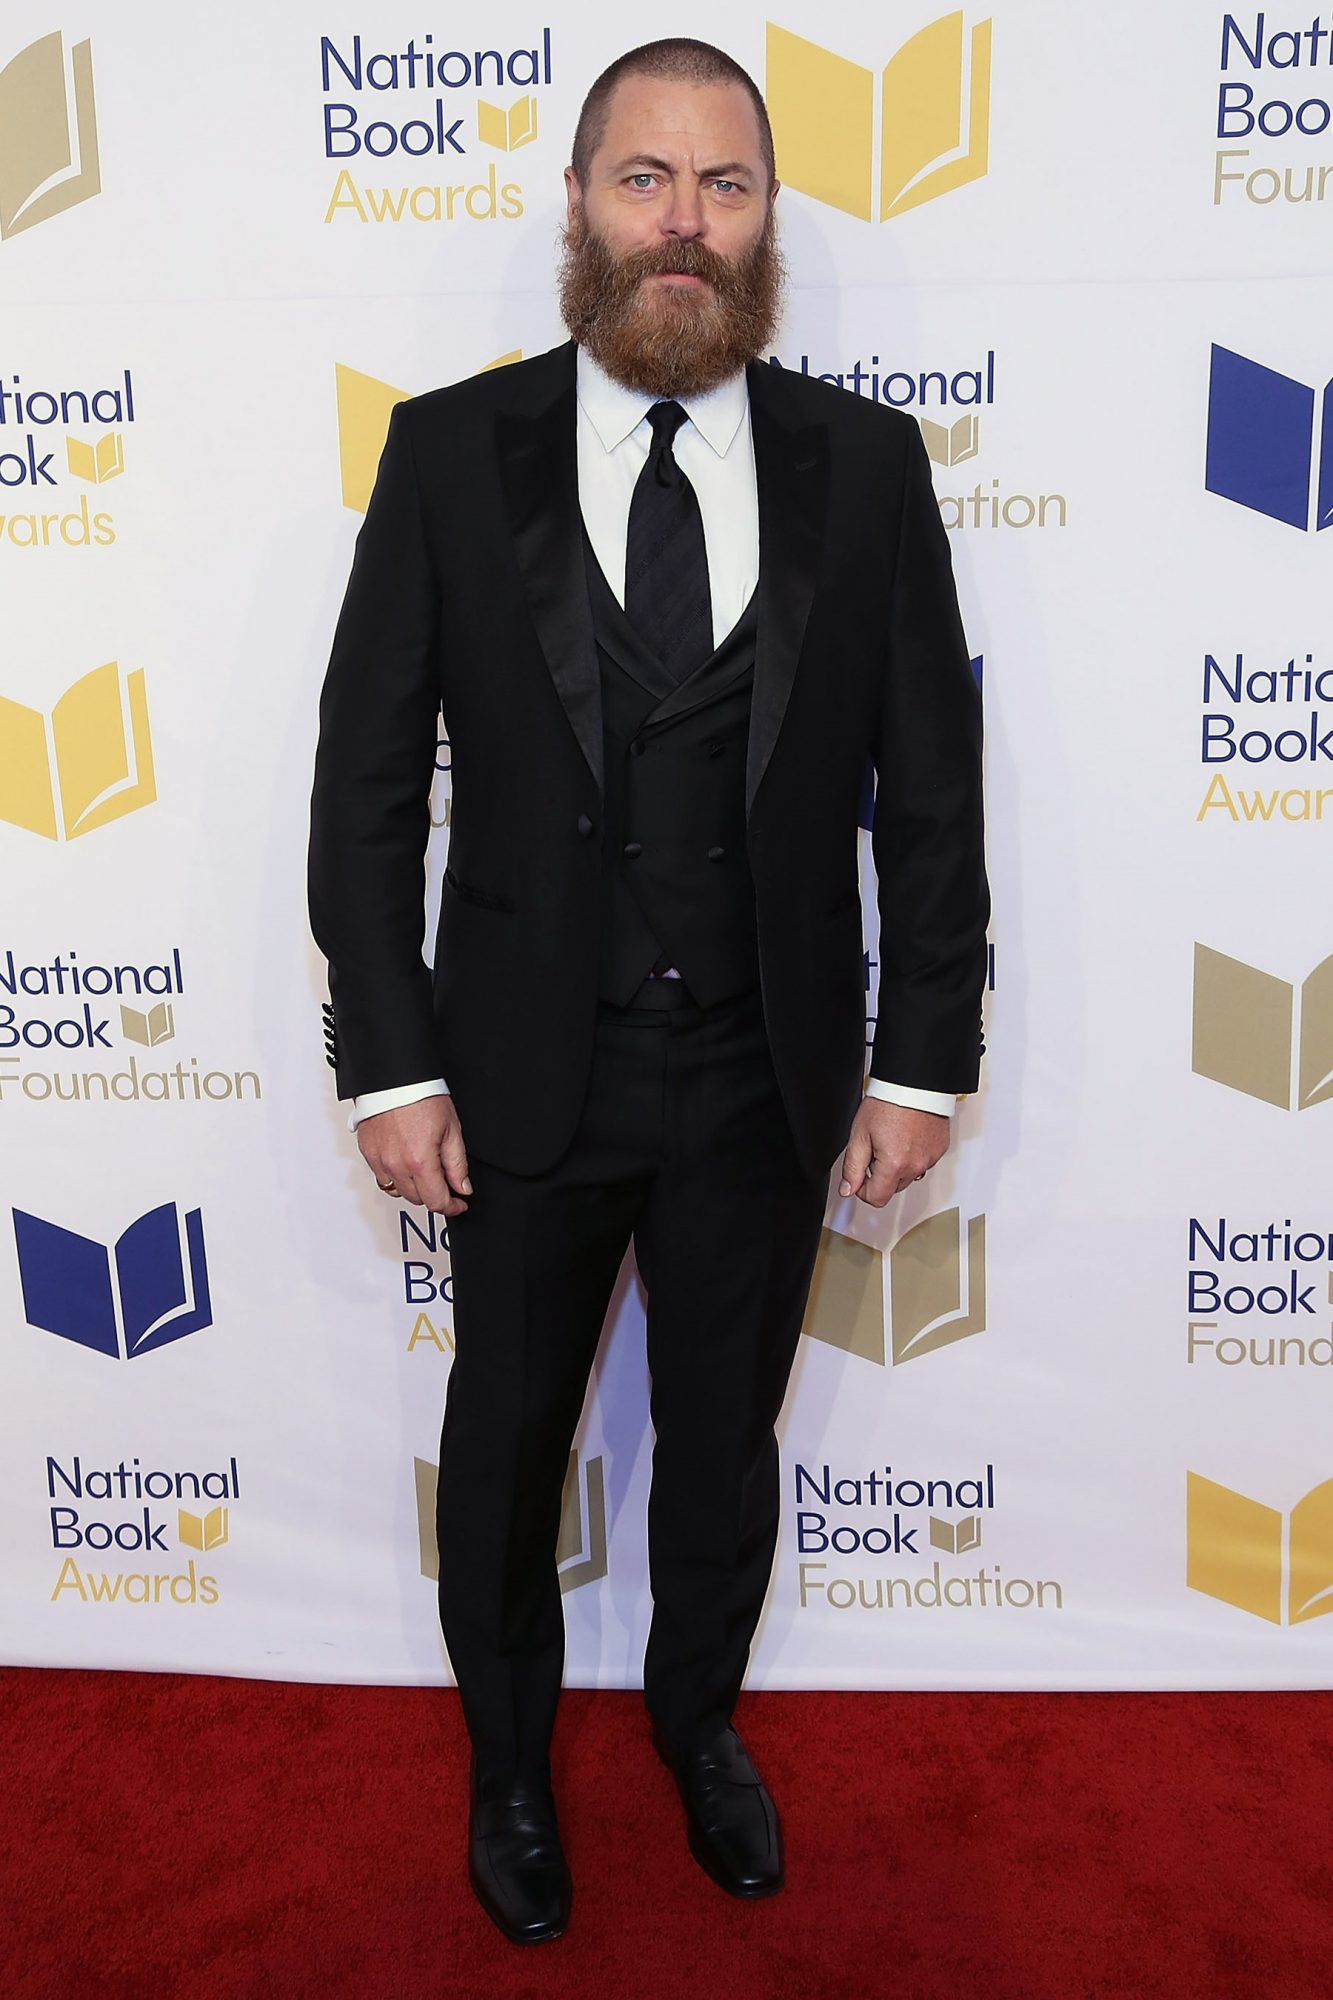 69th National Book Awards